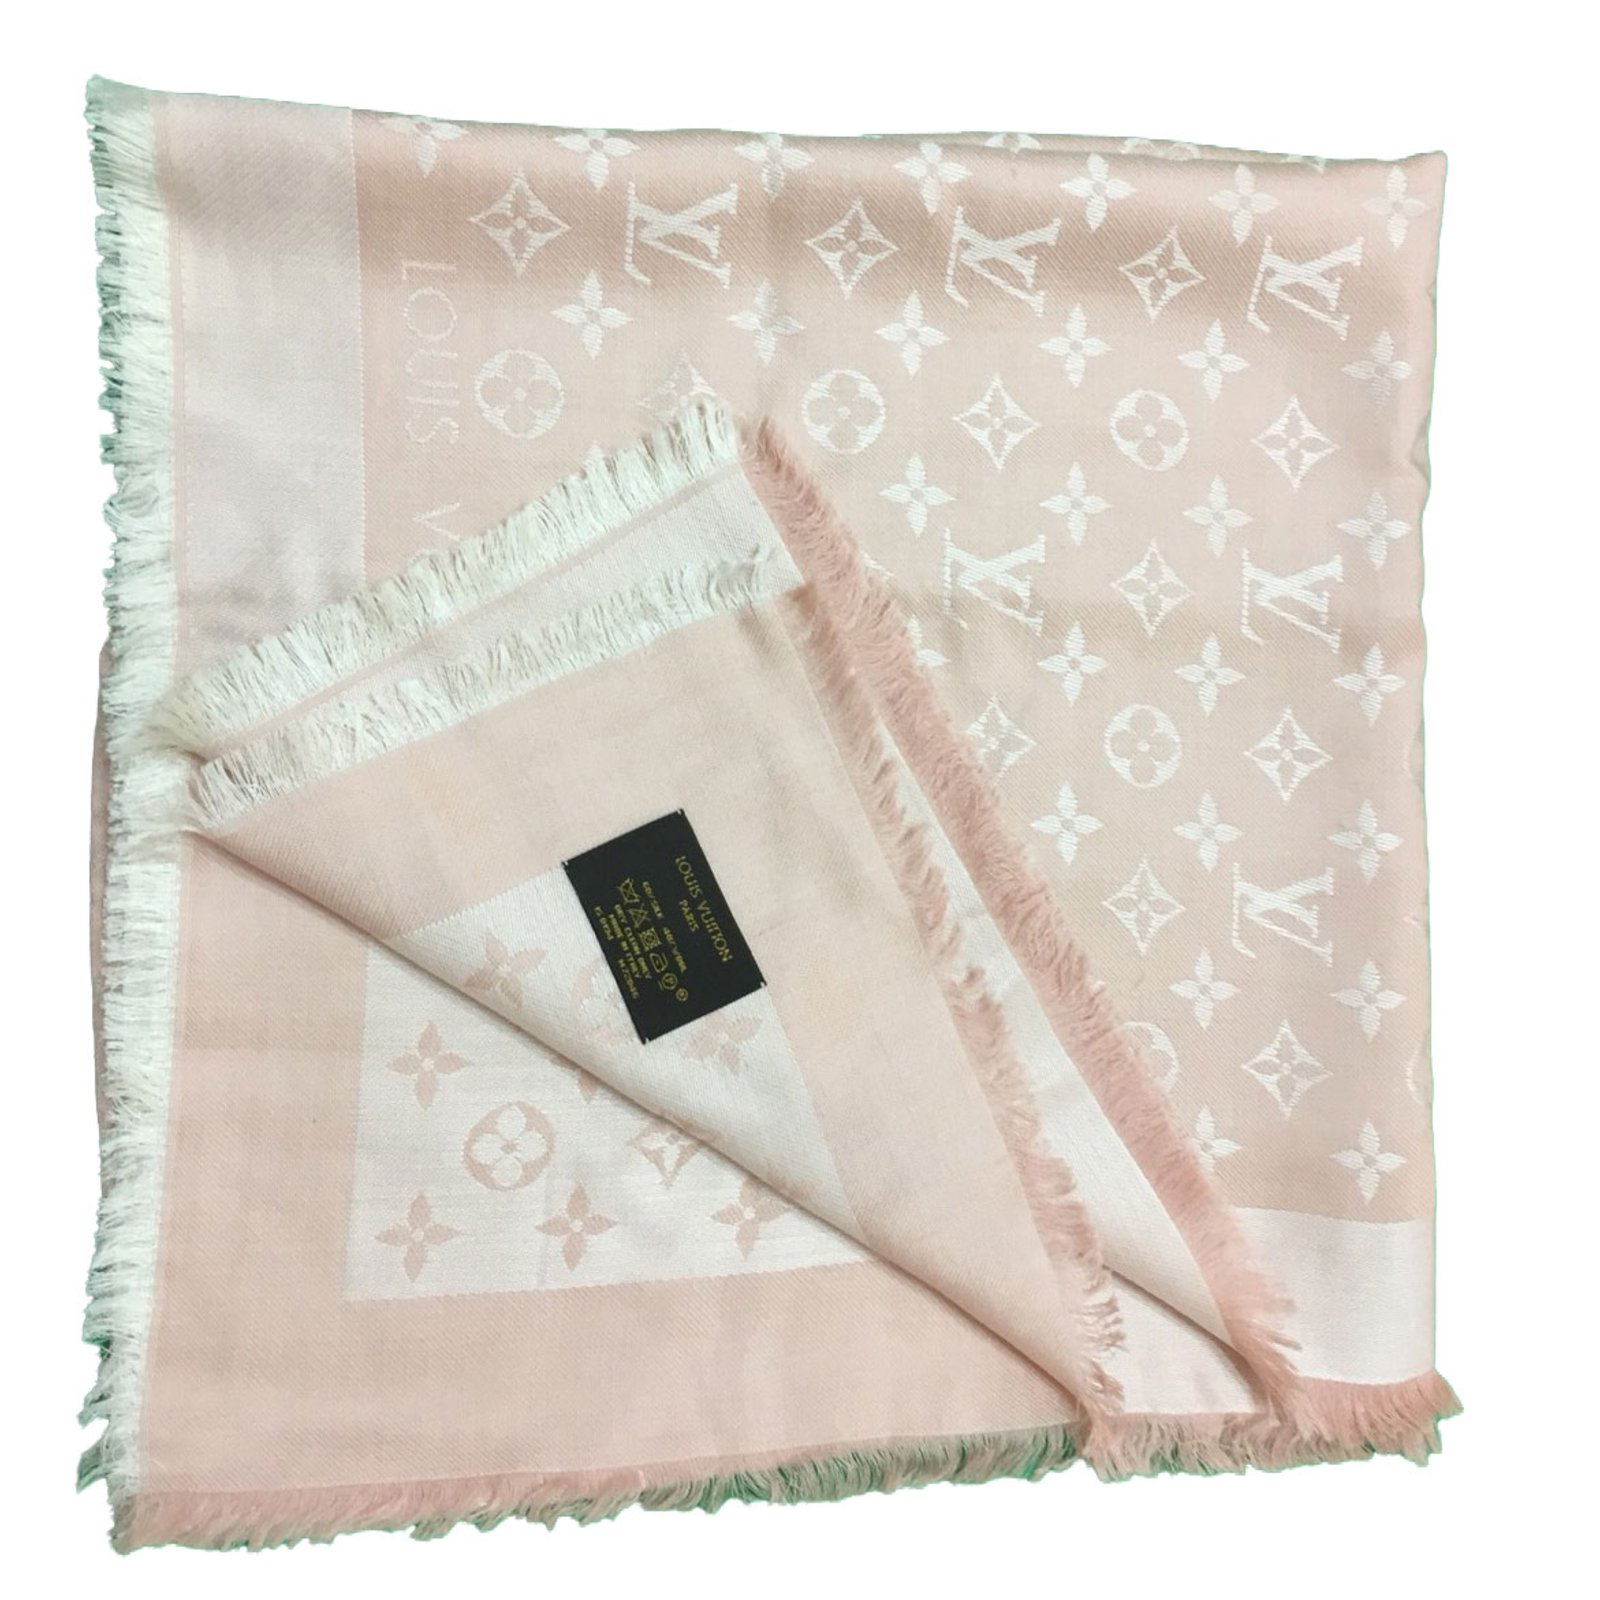 baa695dec1e86 Louis Vuitton Stola louis vuitton rosa Scarves Wool Pink ref.49431 ...